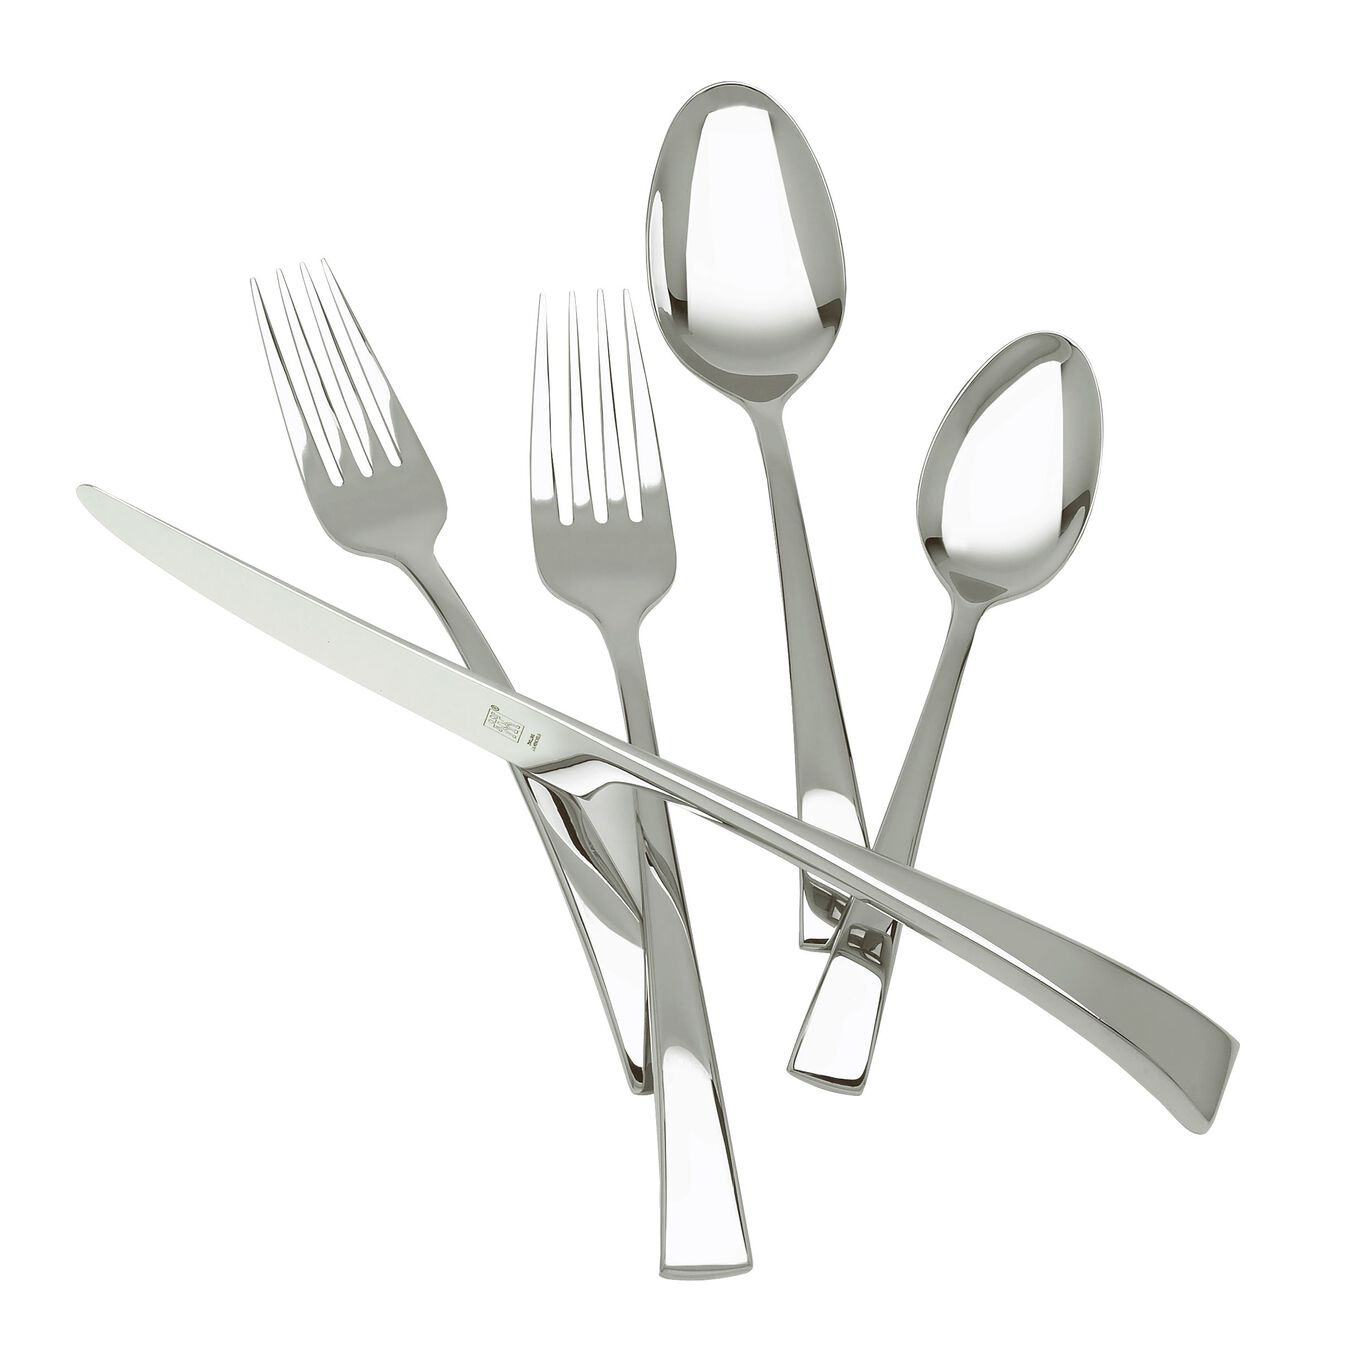 45 Piece Flatware Set matted/polished,,large 1